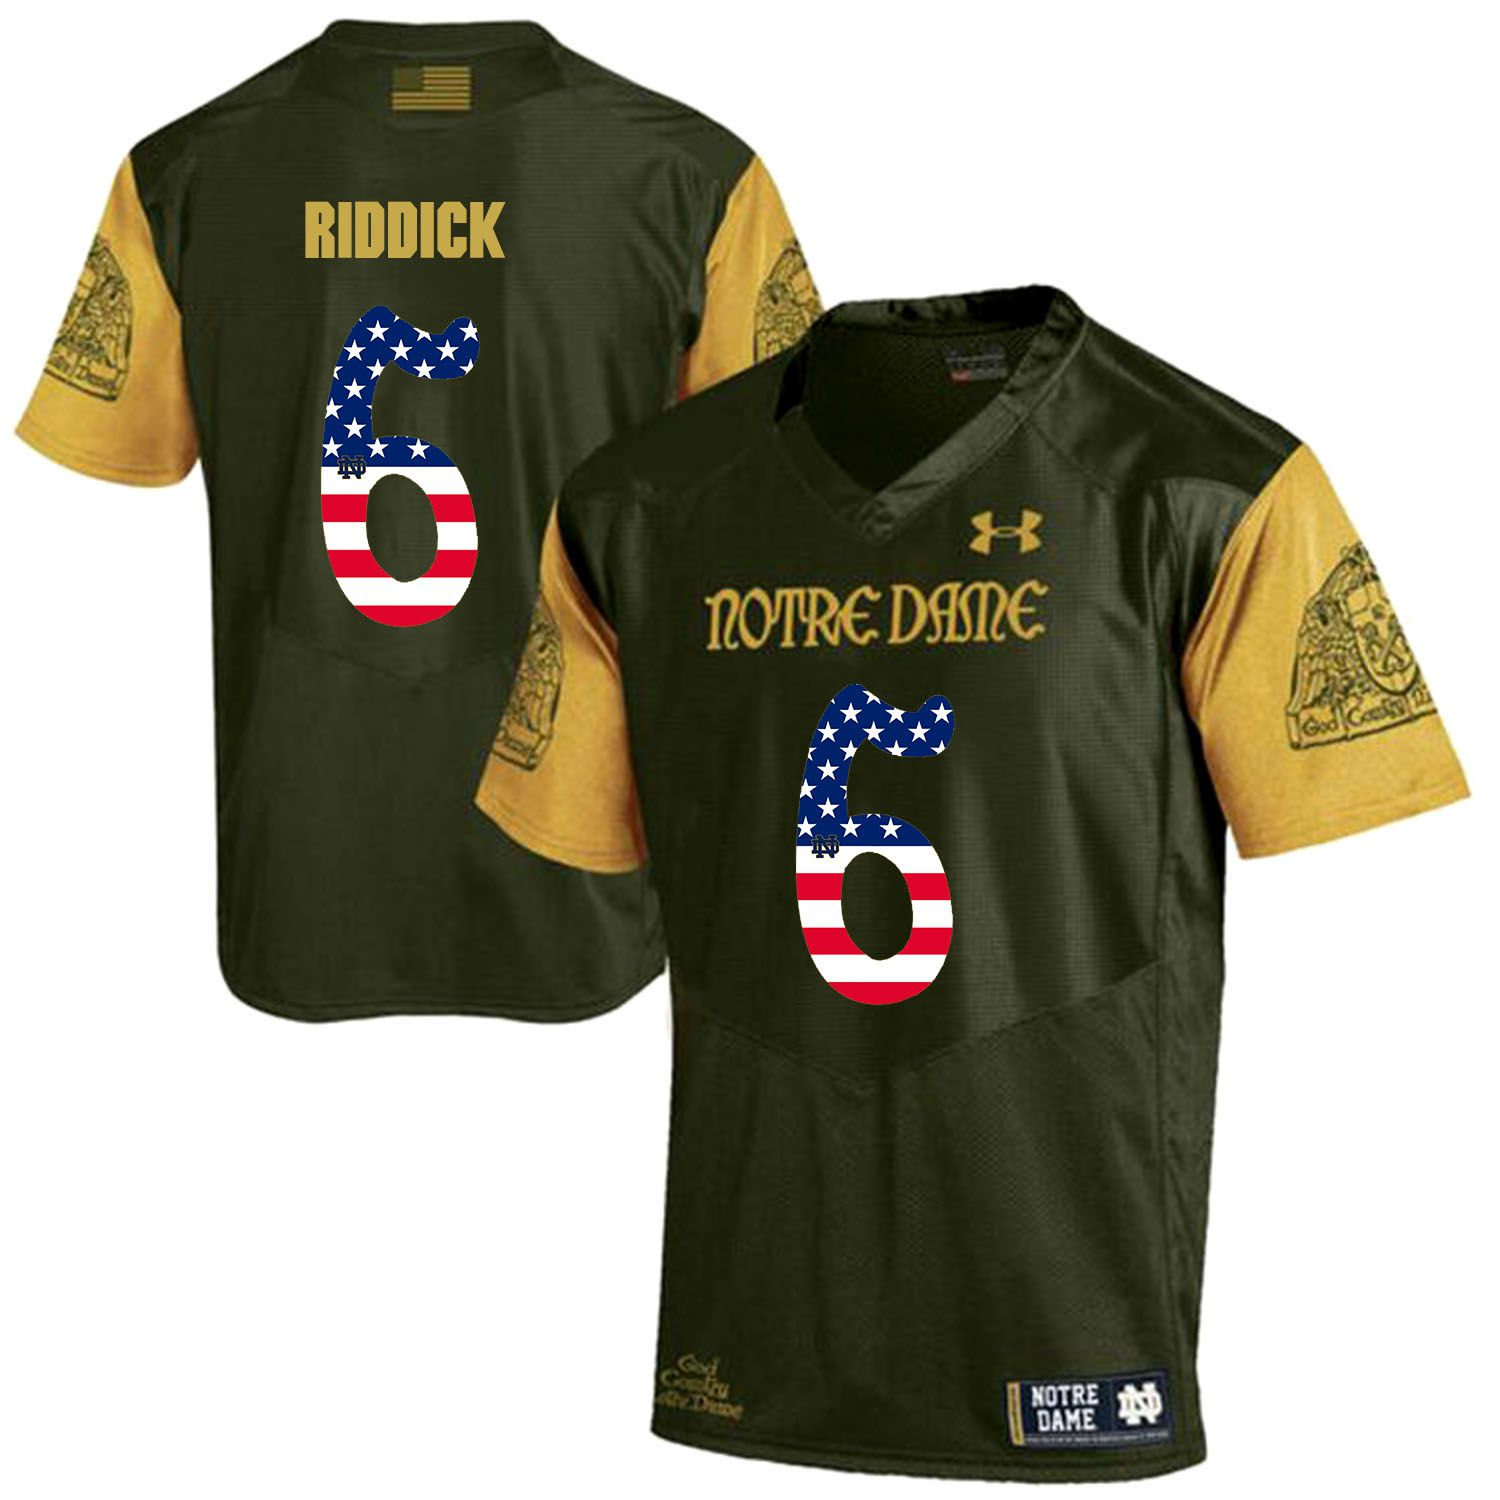 Men Norte Dame Fighting Irish 6 Riddick Green Flag Customized NCAA Jerseys